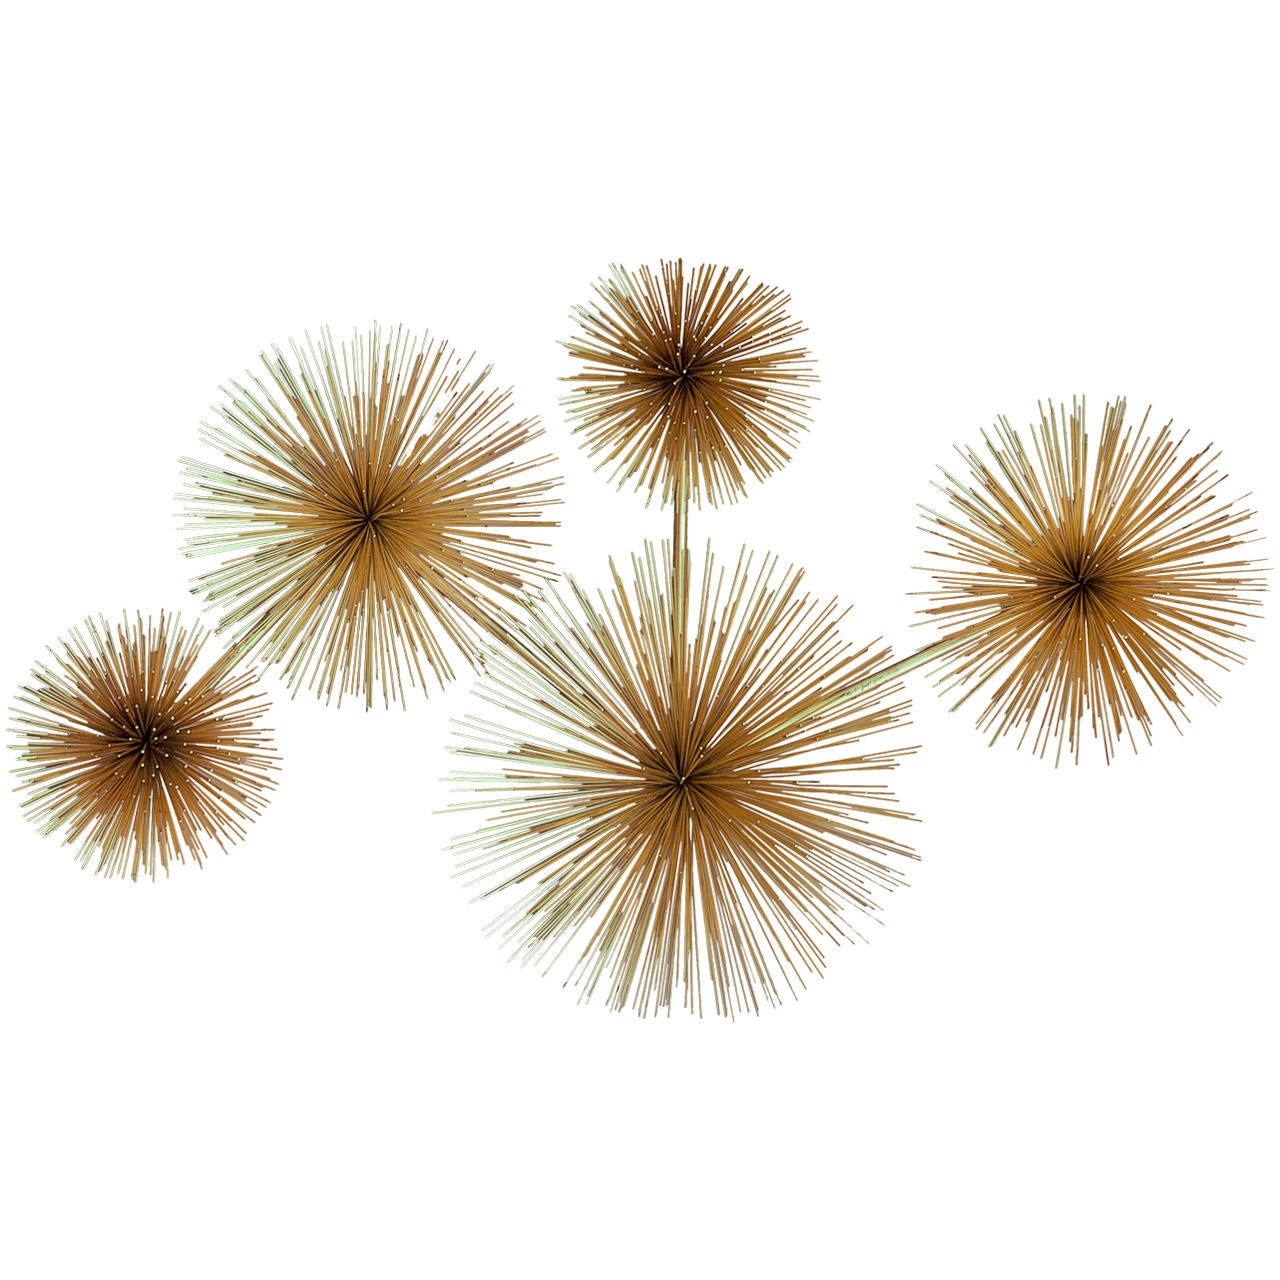 Curtis Jere Urchin Wall Sculpture For Sale